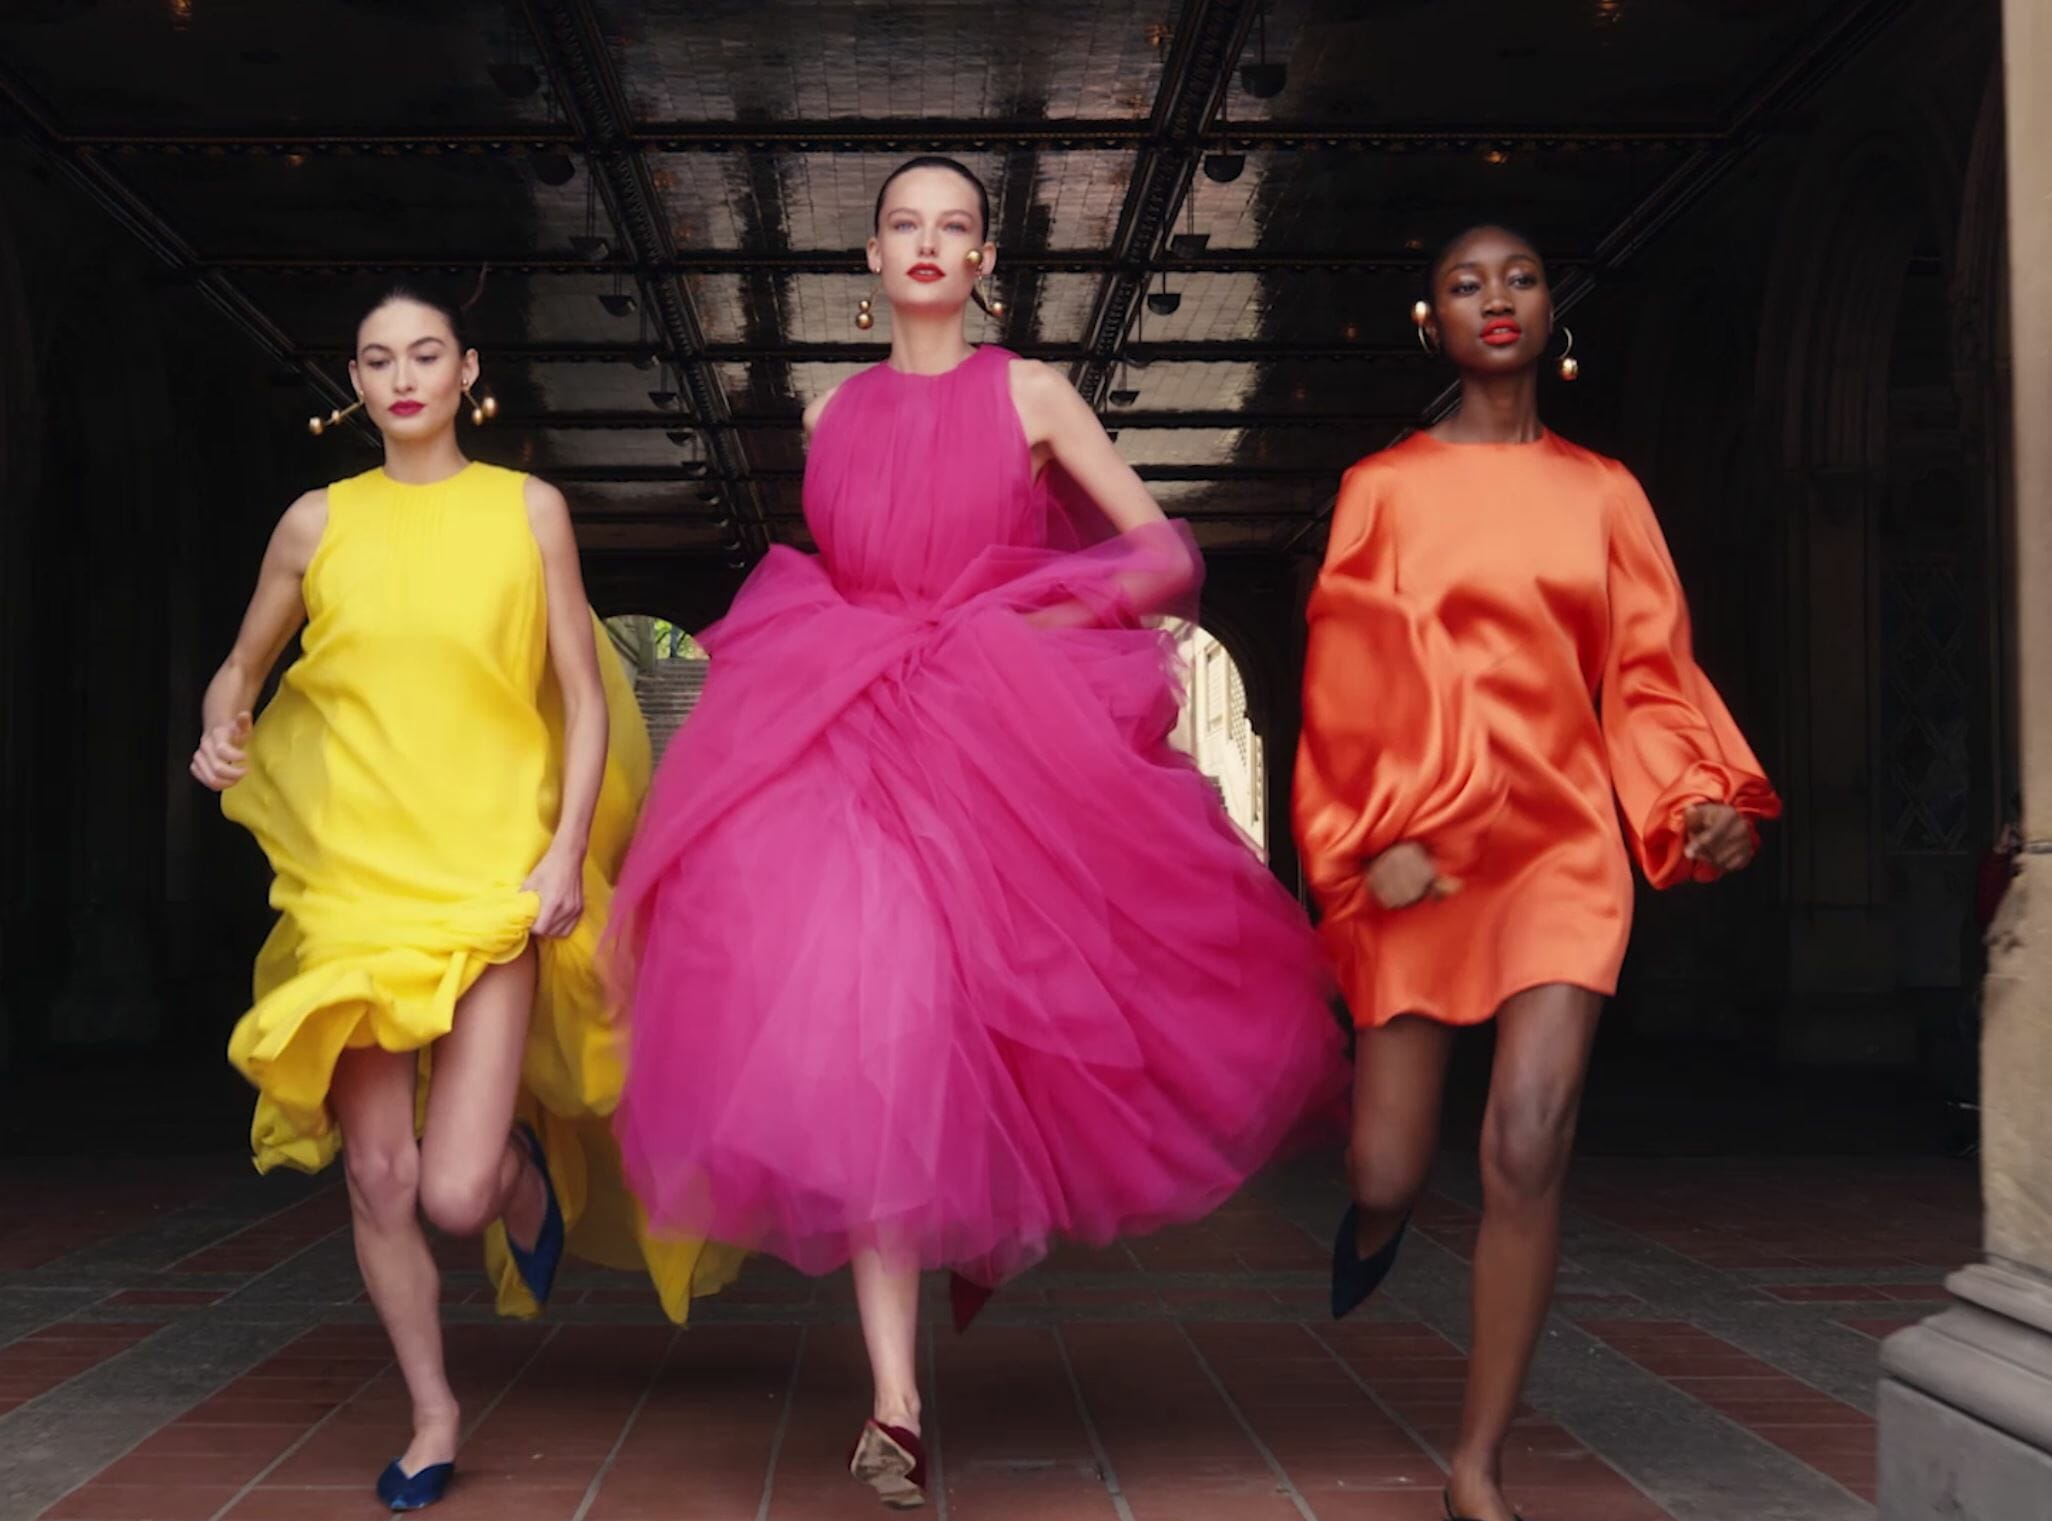 carolina herrera new york models wearing pink orange and yellow gowns running in central park